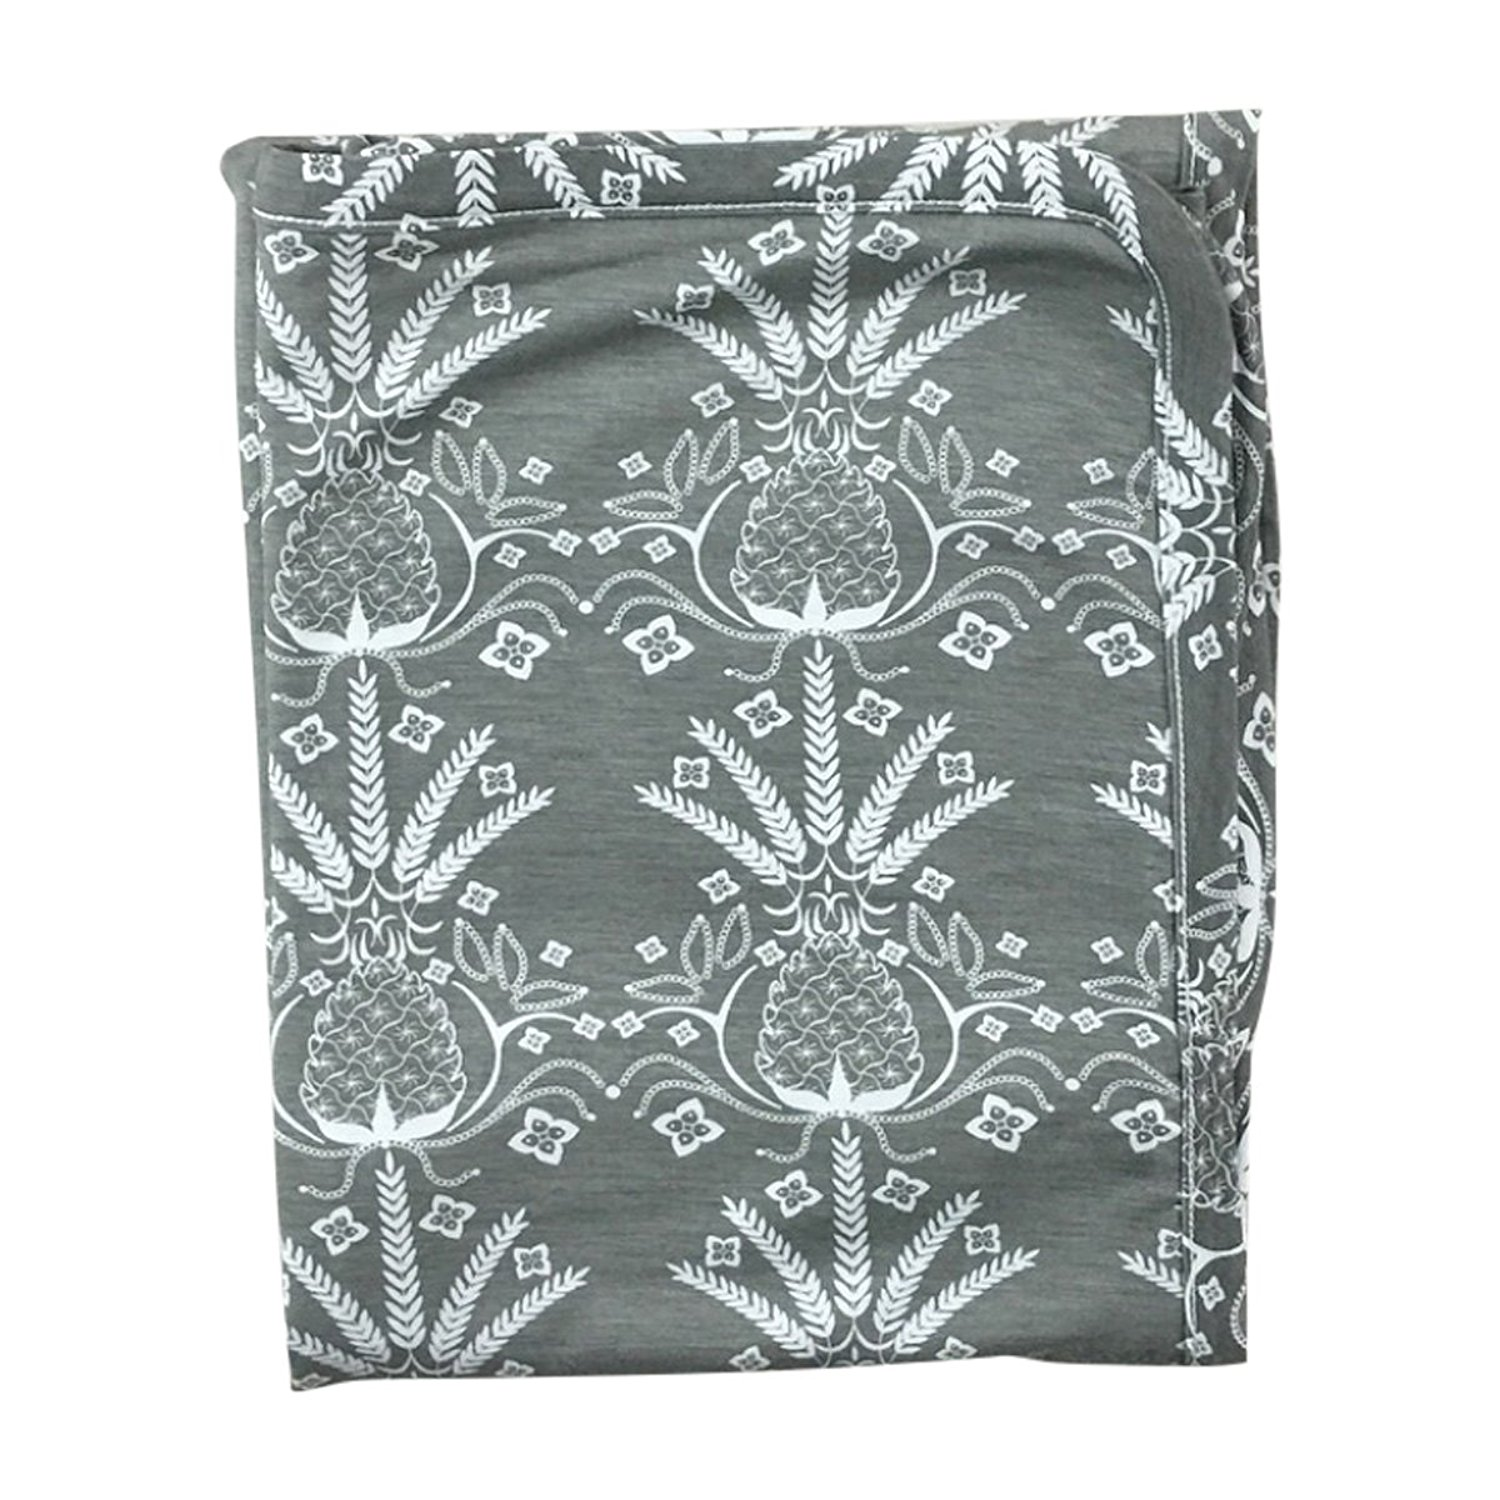 Kate Quinn Organics Unisex-Baby Viscose From Bamboo Receiving Blanket